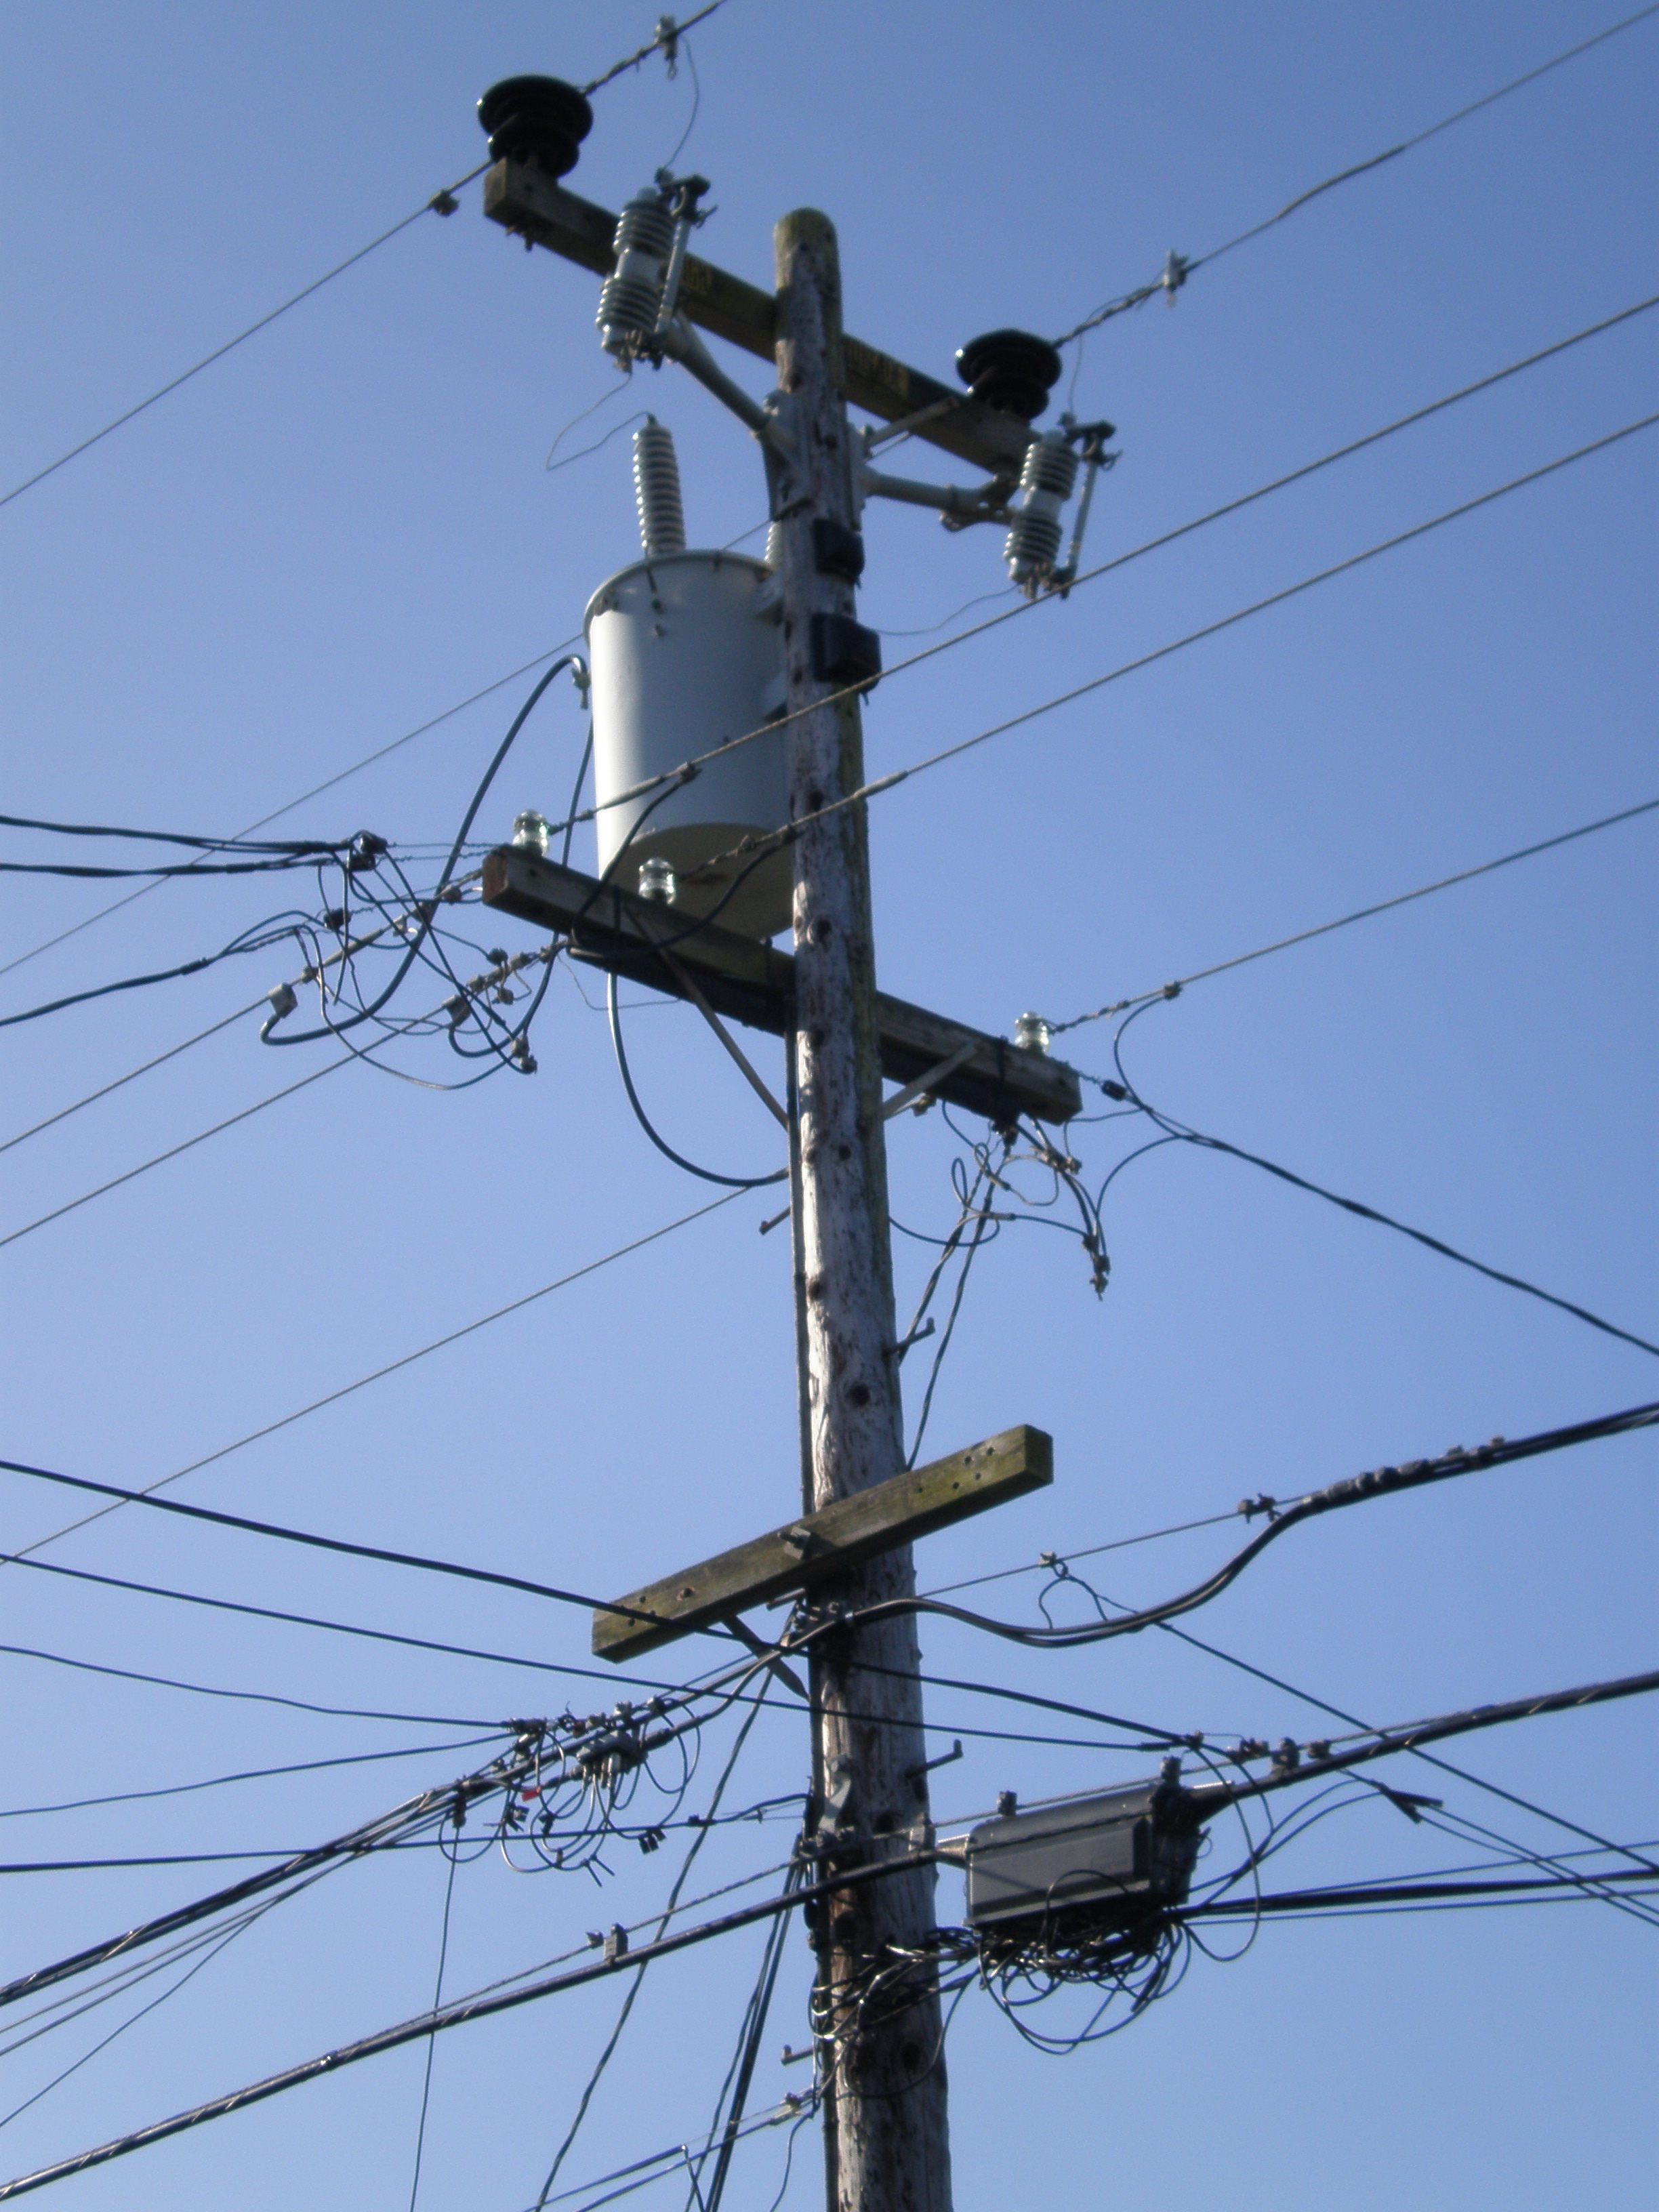 File:SSF utility pole 1 front.JPG - Wikimedia Commons